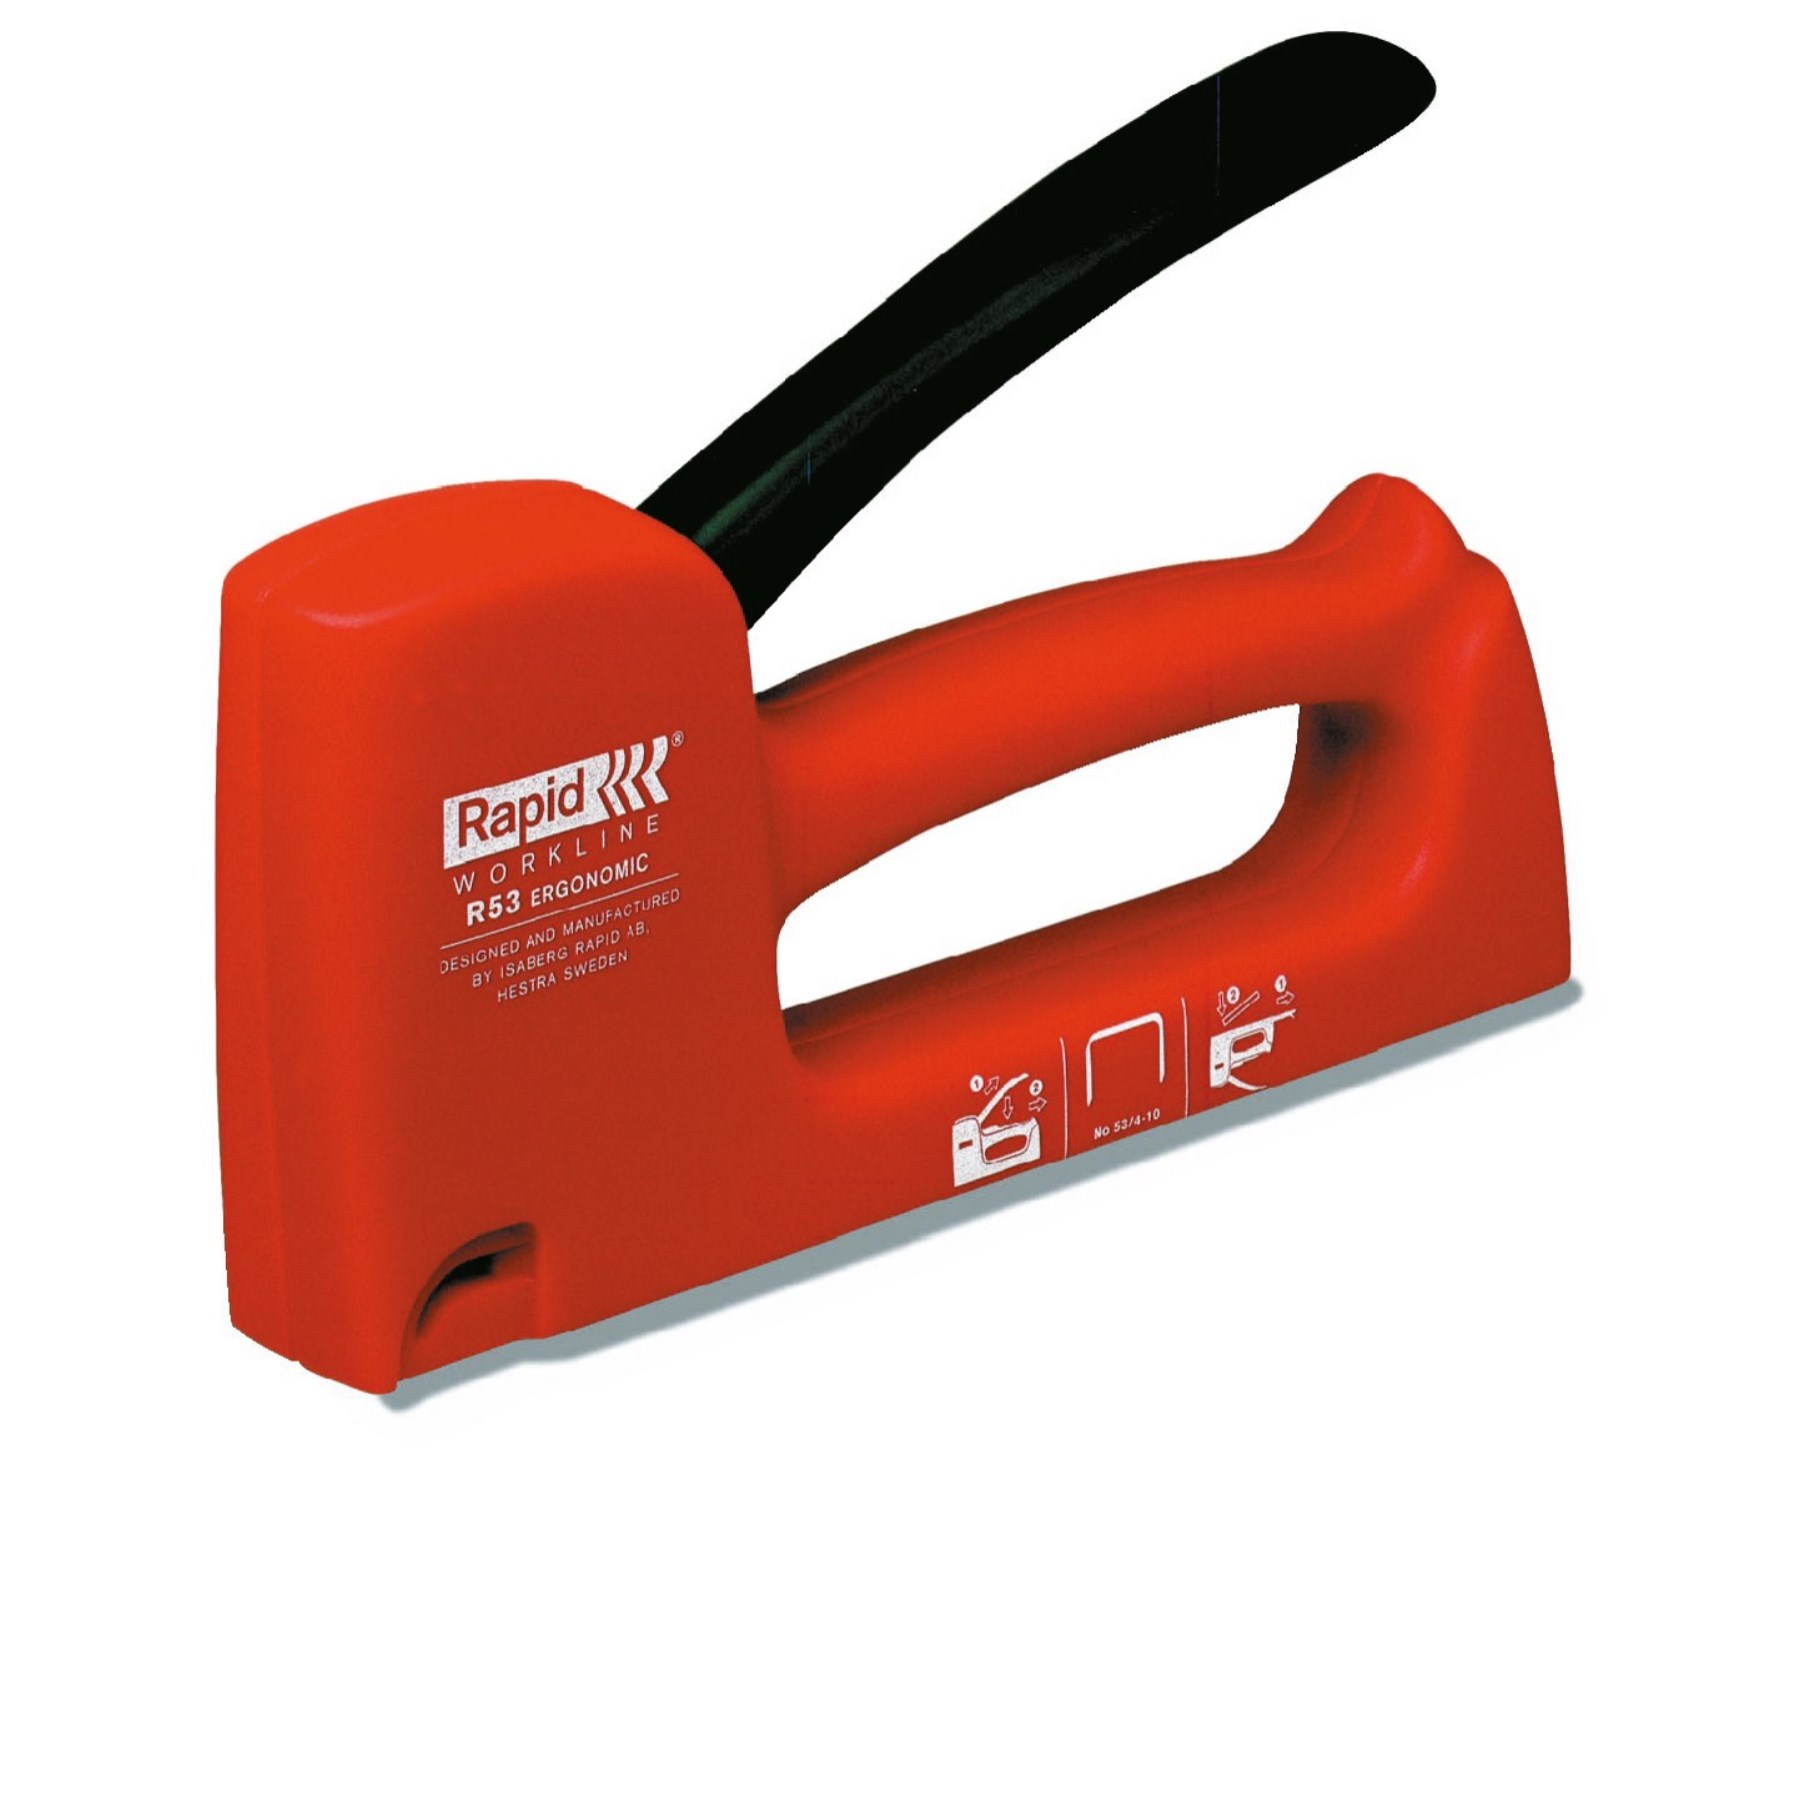 1131260 - Handtacker R53 Ergonomic